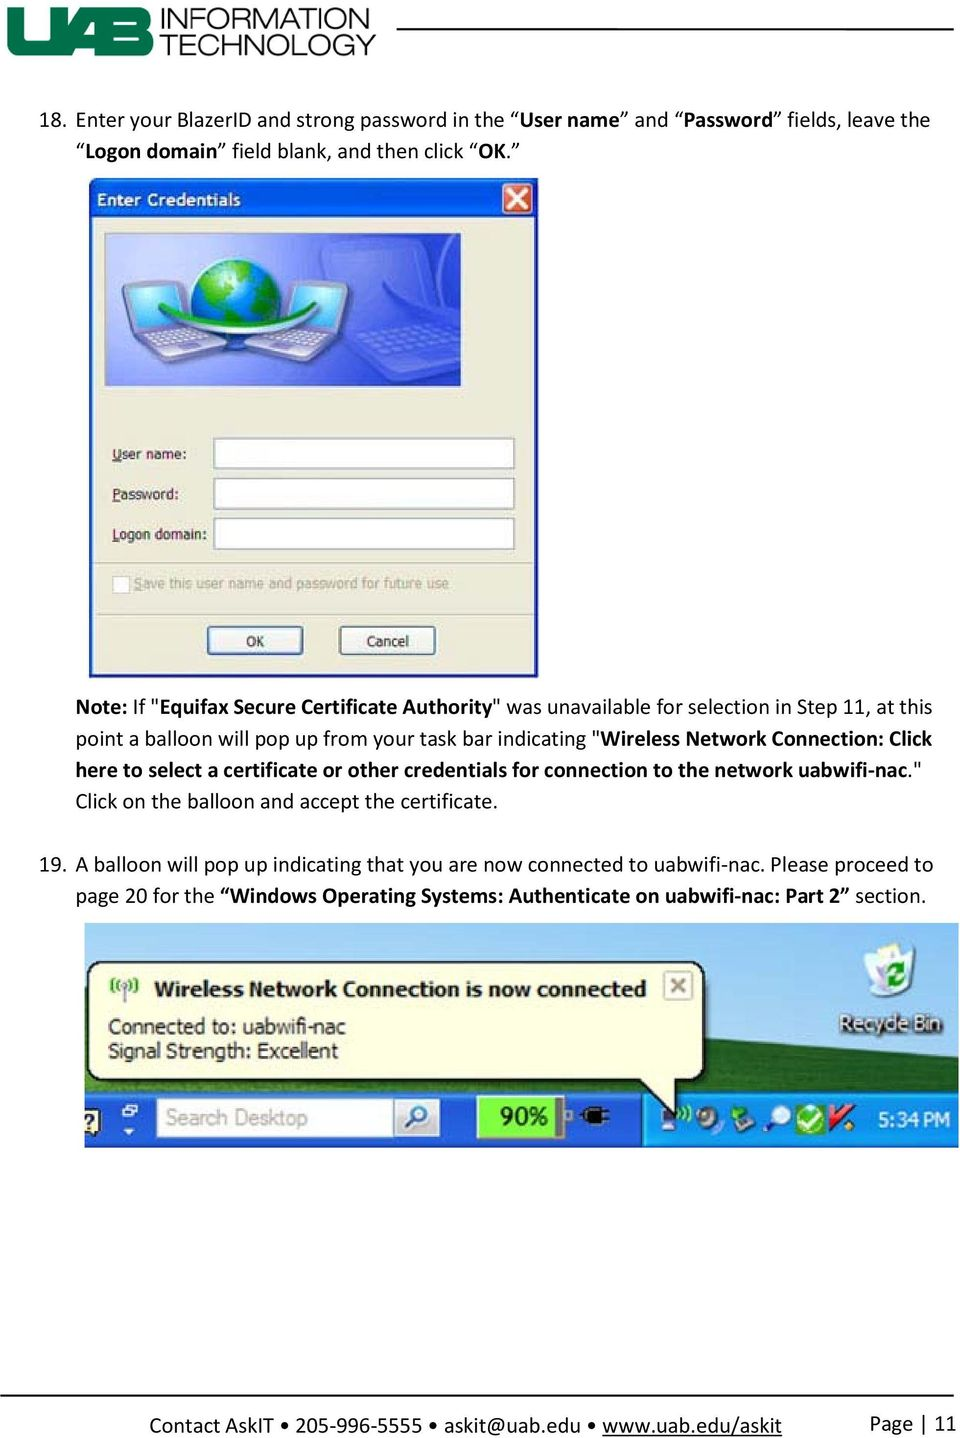 Network Connection: Click here to select a certificate or other credentials for connection to the network uabwifi-nac.